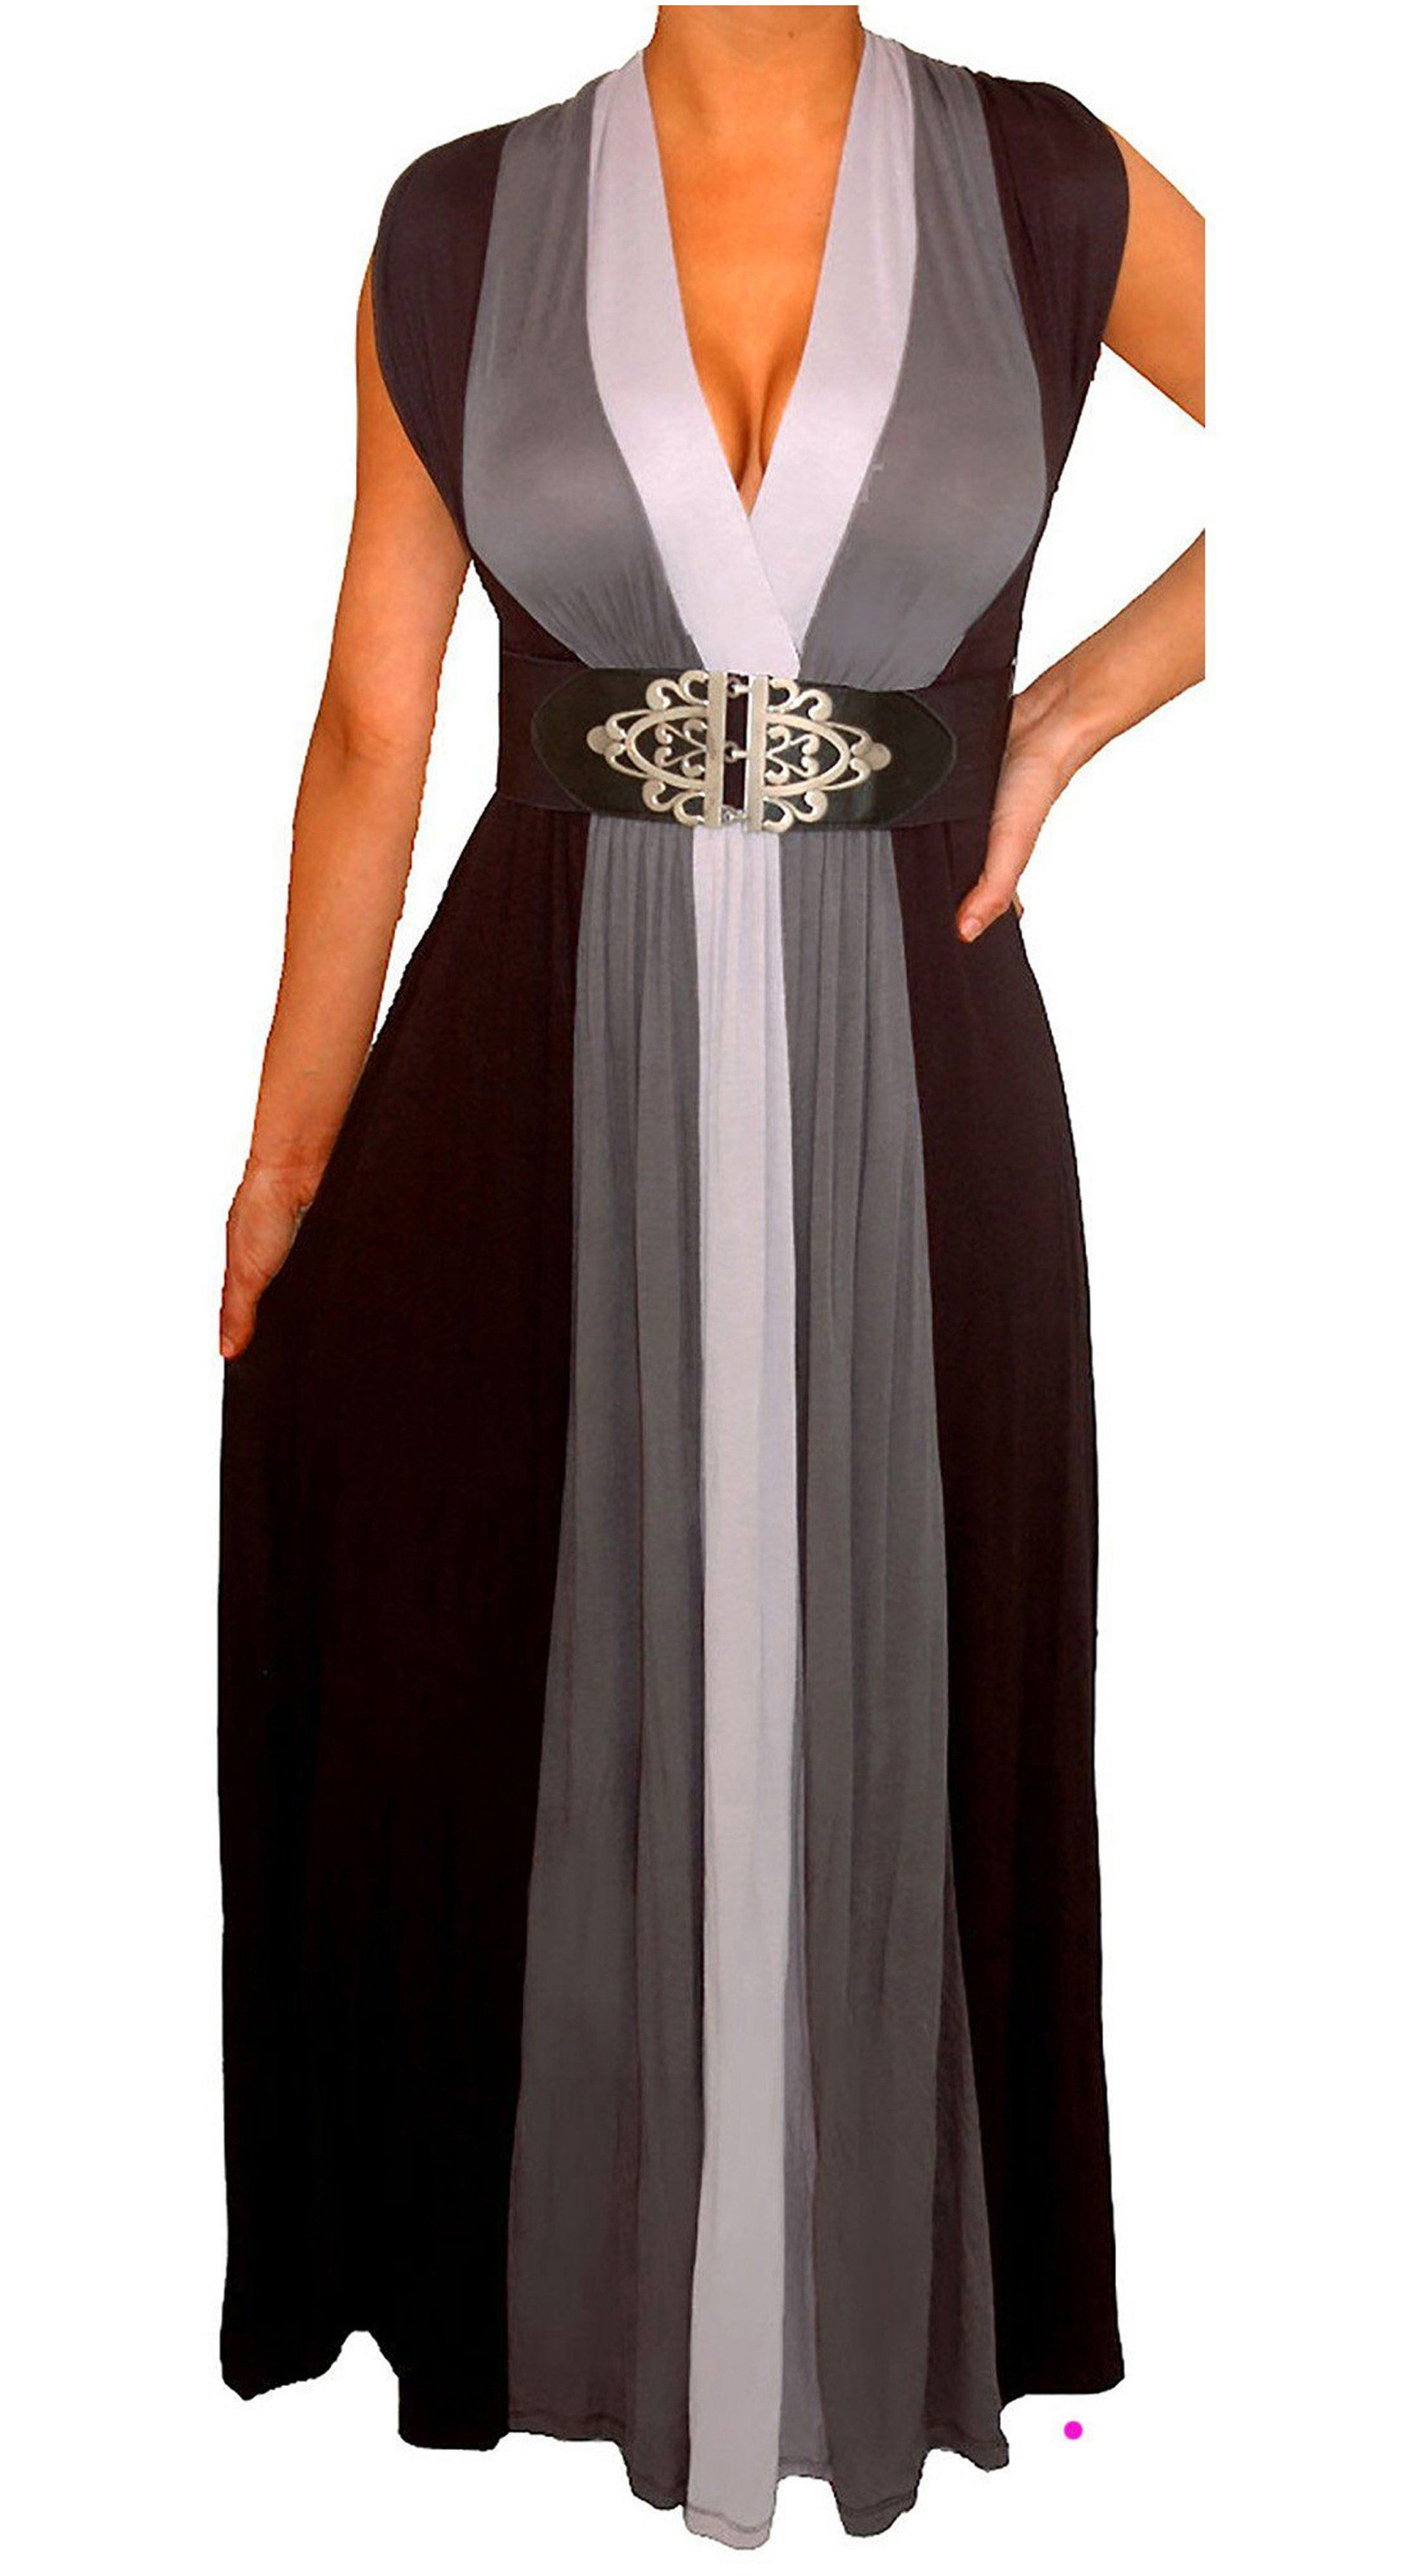 Gray Maxi Dress Made In Usa In 2021 Plus Size Outfits Long Maxi Dress Size Fashion [ 4000 x 2200 Pixel ]